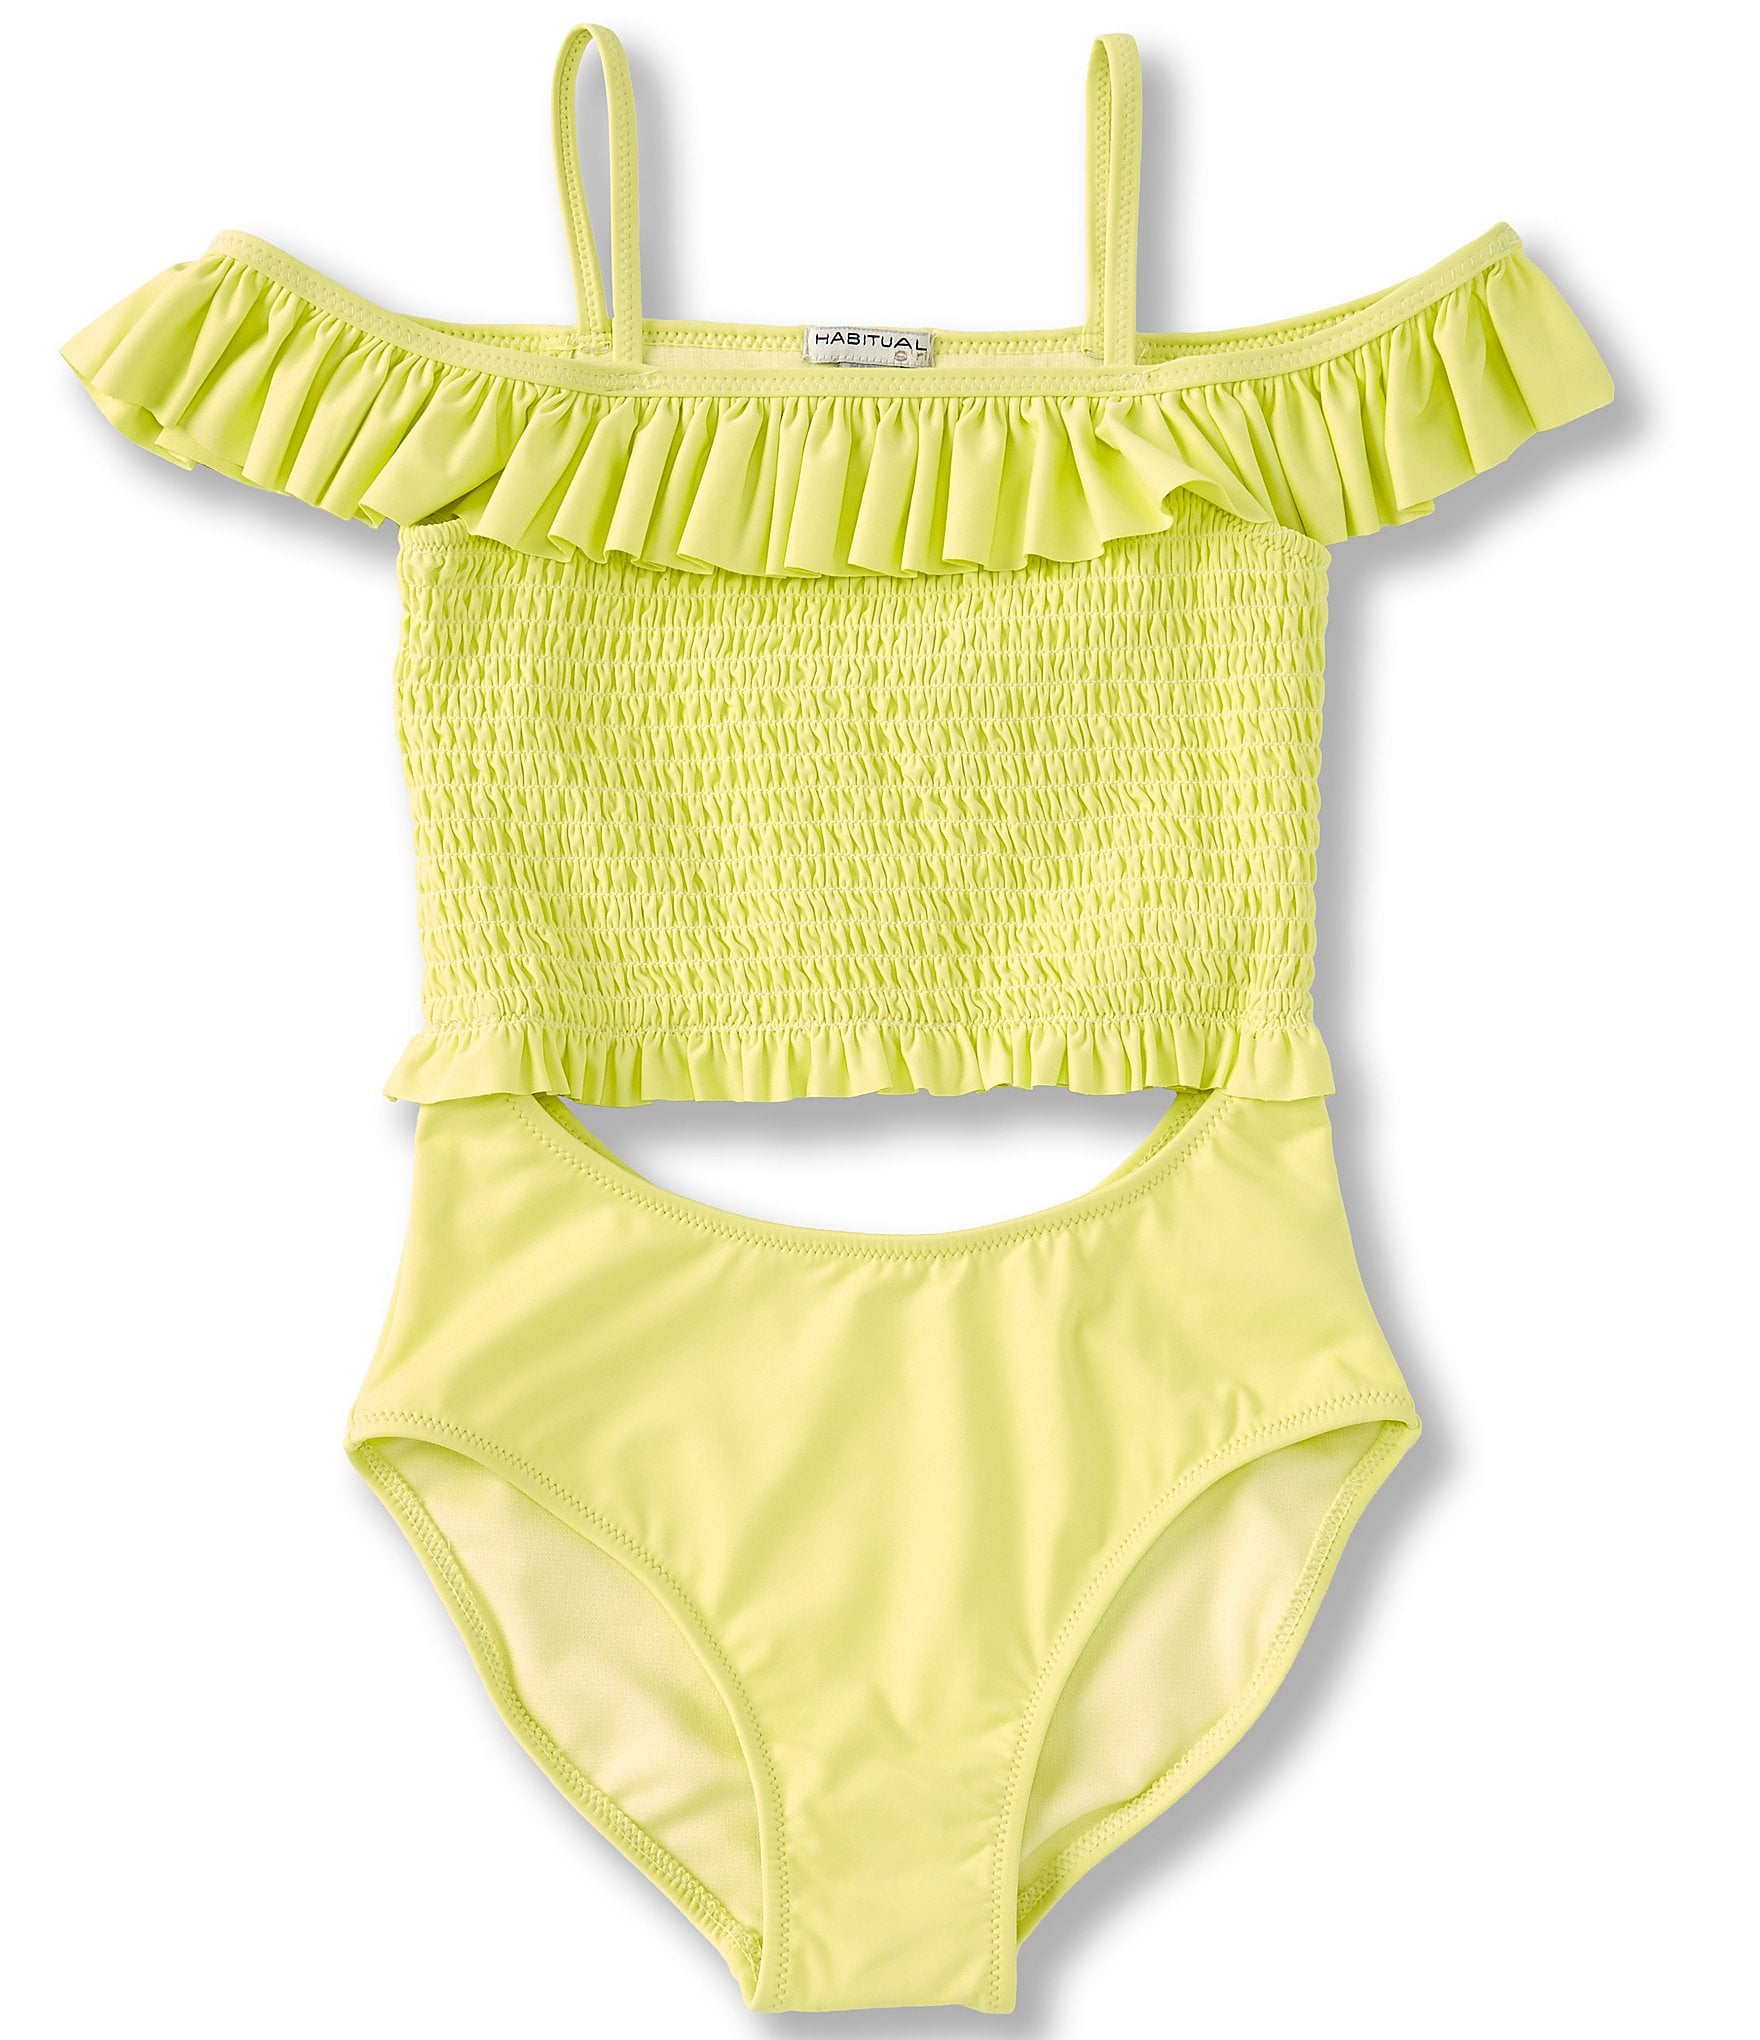 Habitual Girl Solid Yellow Tankini Set One Shoulder Strap Sz 12 Only Left! NWTs